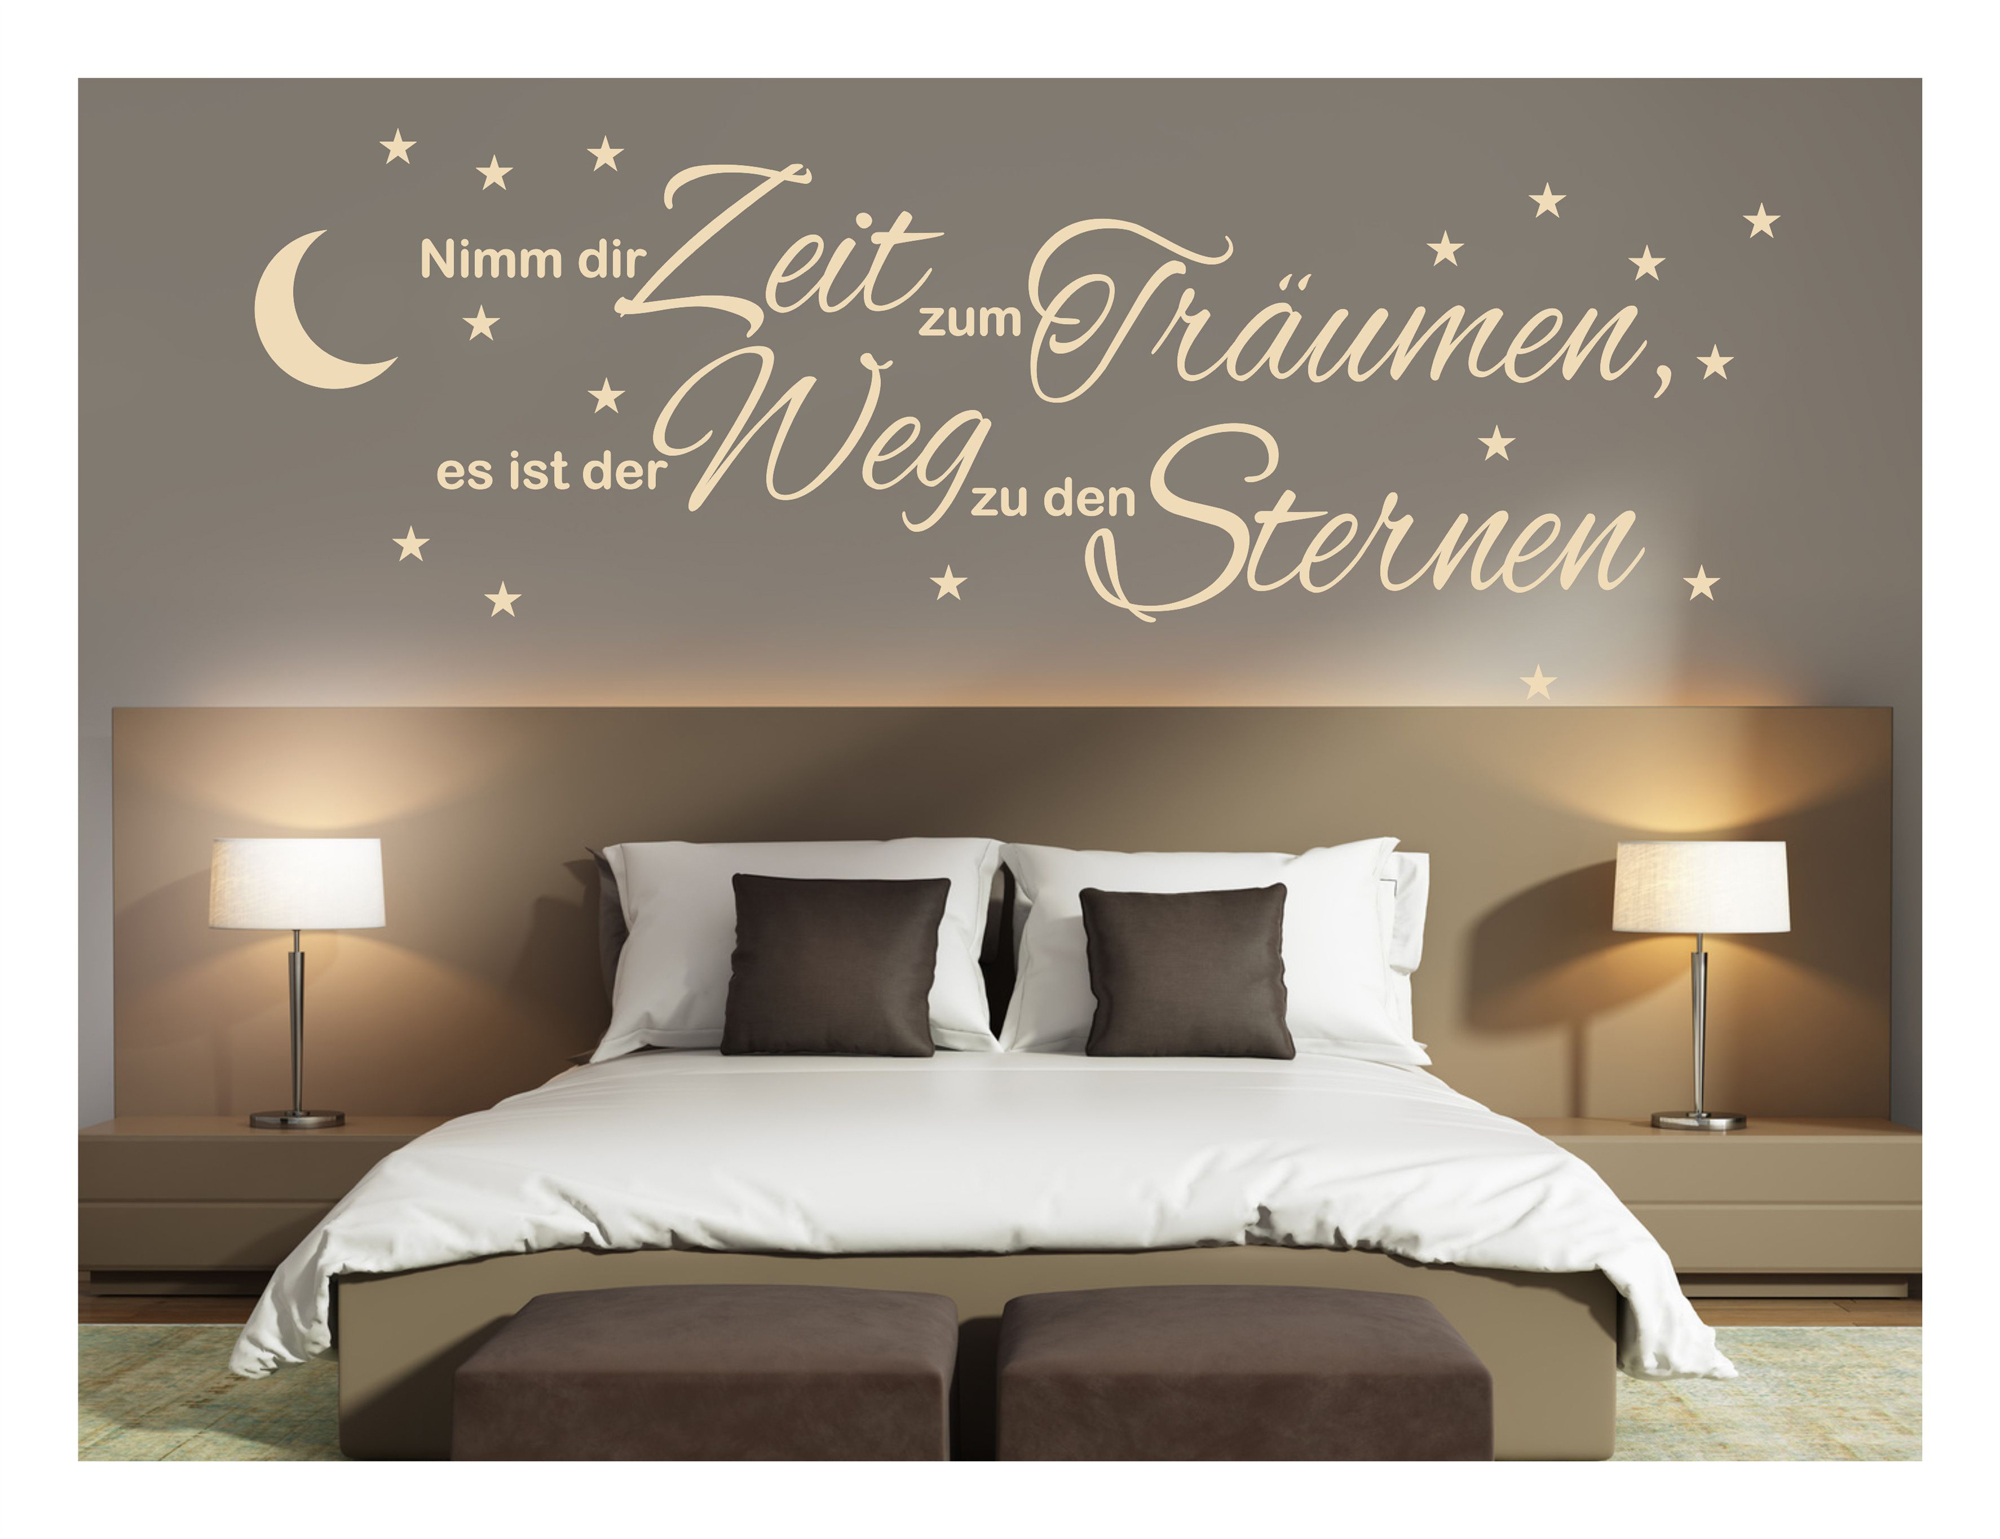 wandtattoo schlafzimmer nimm dir zeit zum tr umen. Black Bedroom Furniture Sets. Home Design Ideas